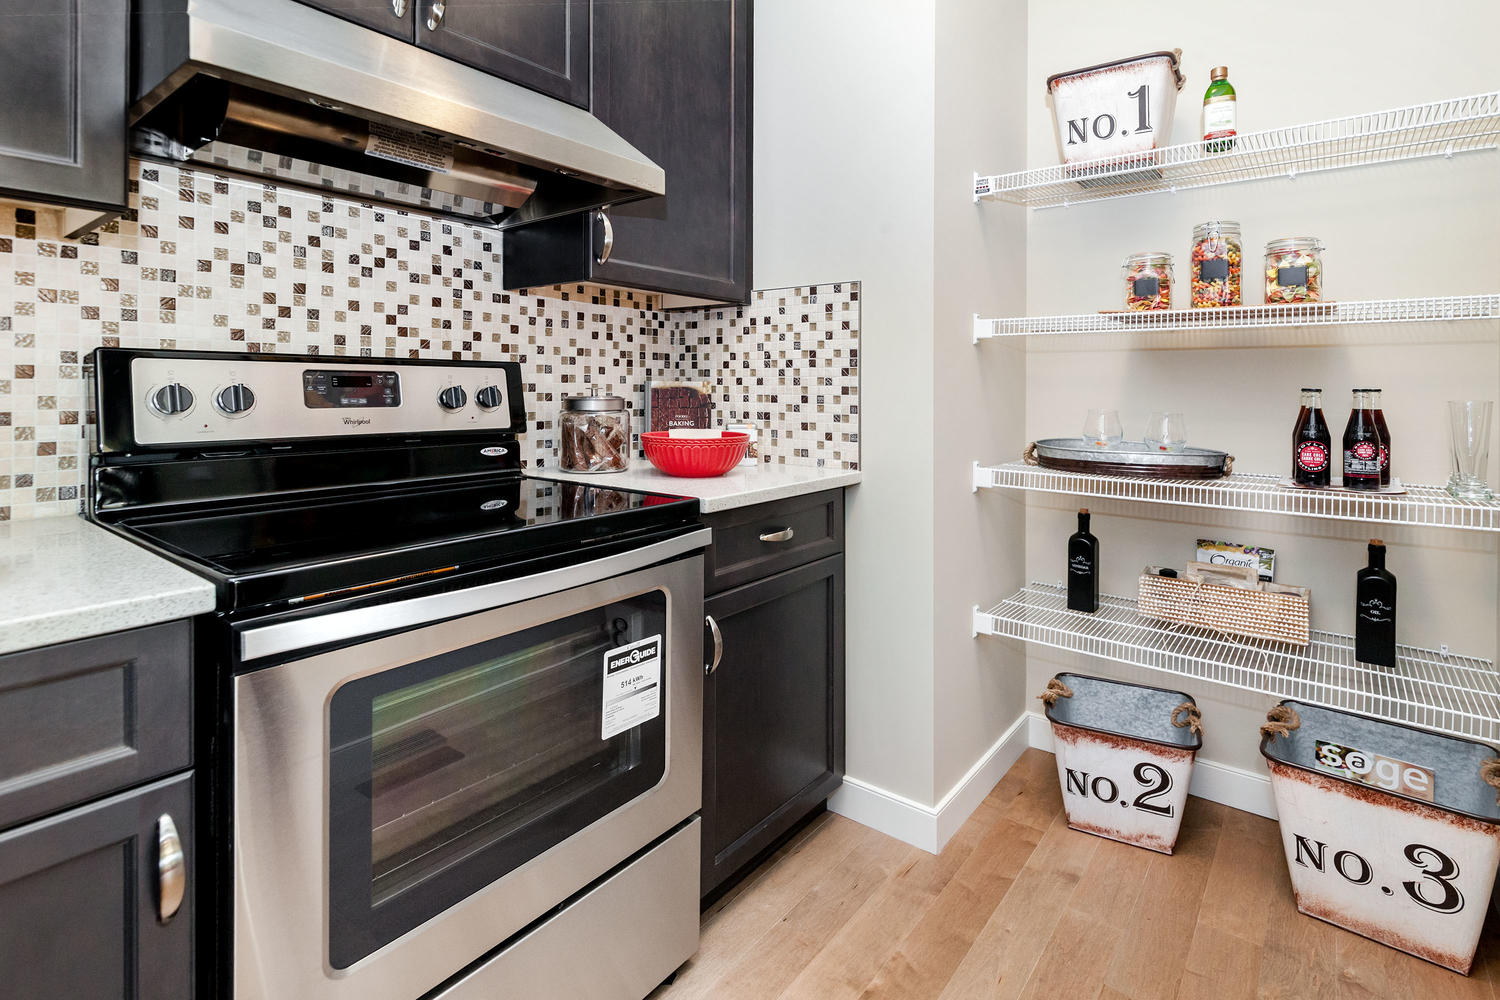 open concept pantry and stove in a pacesetter front drive home kitchen.